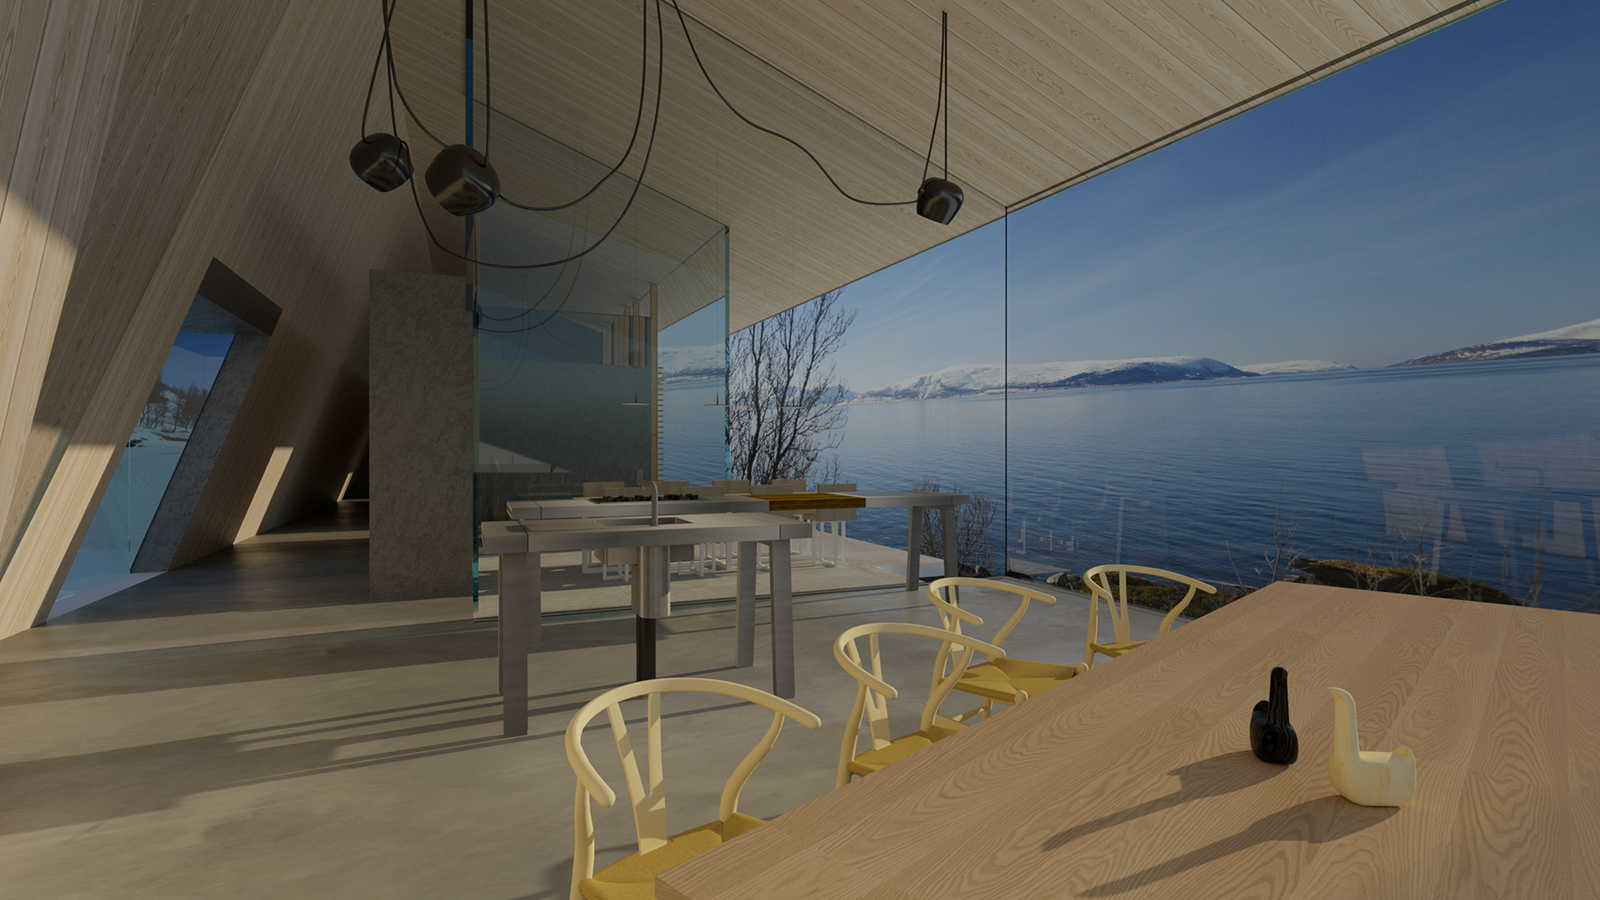 3 unbuilt homes you could make a reality: Lyngen cabin by Snorre Stinessen